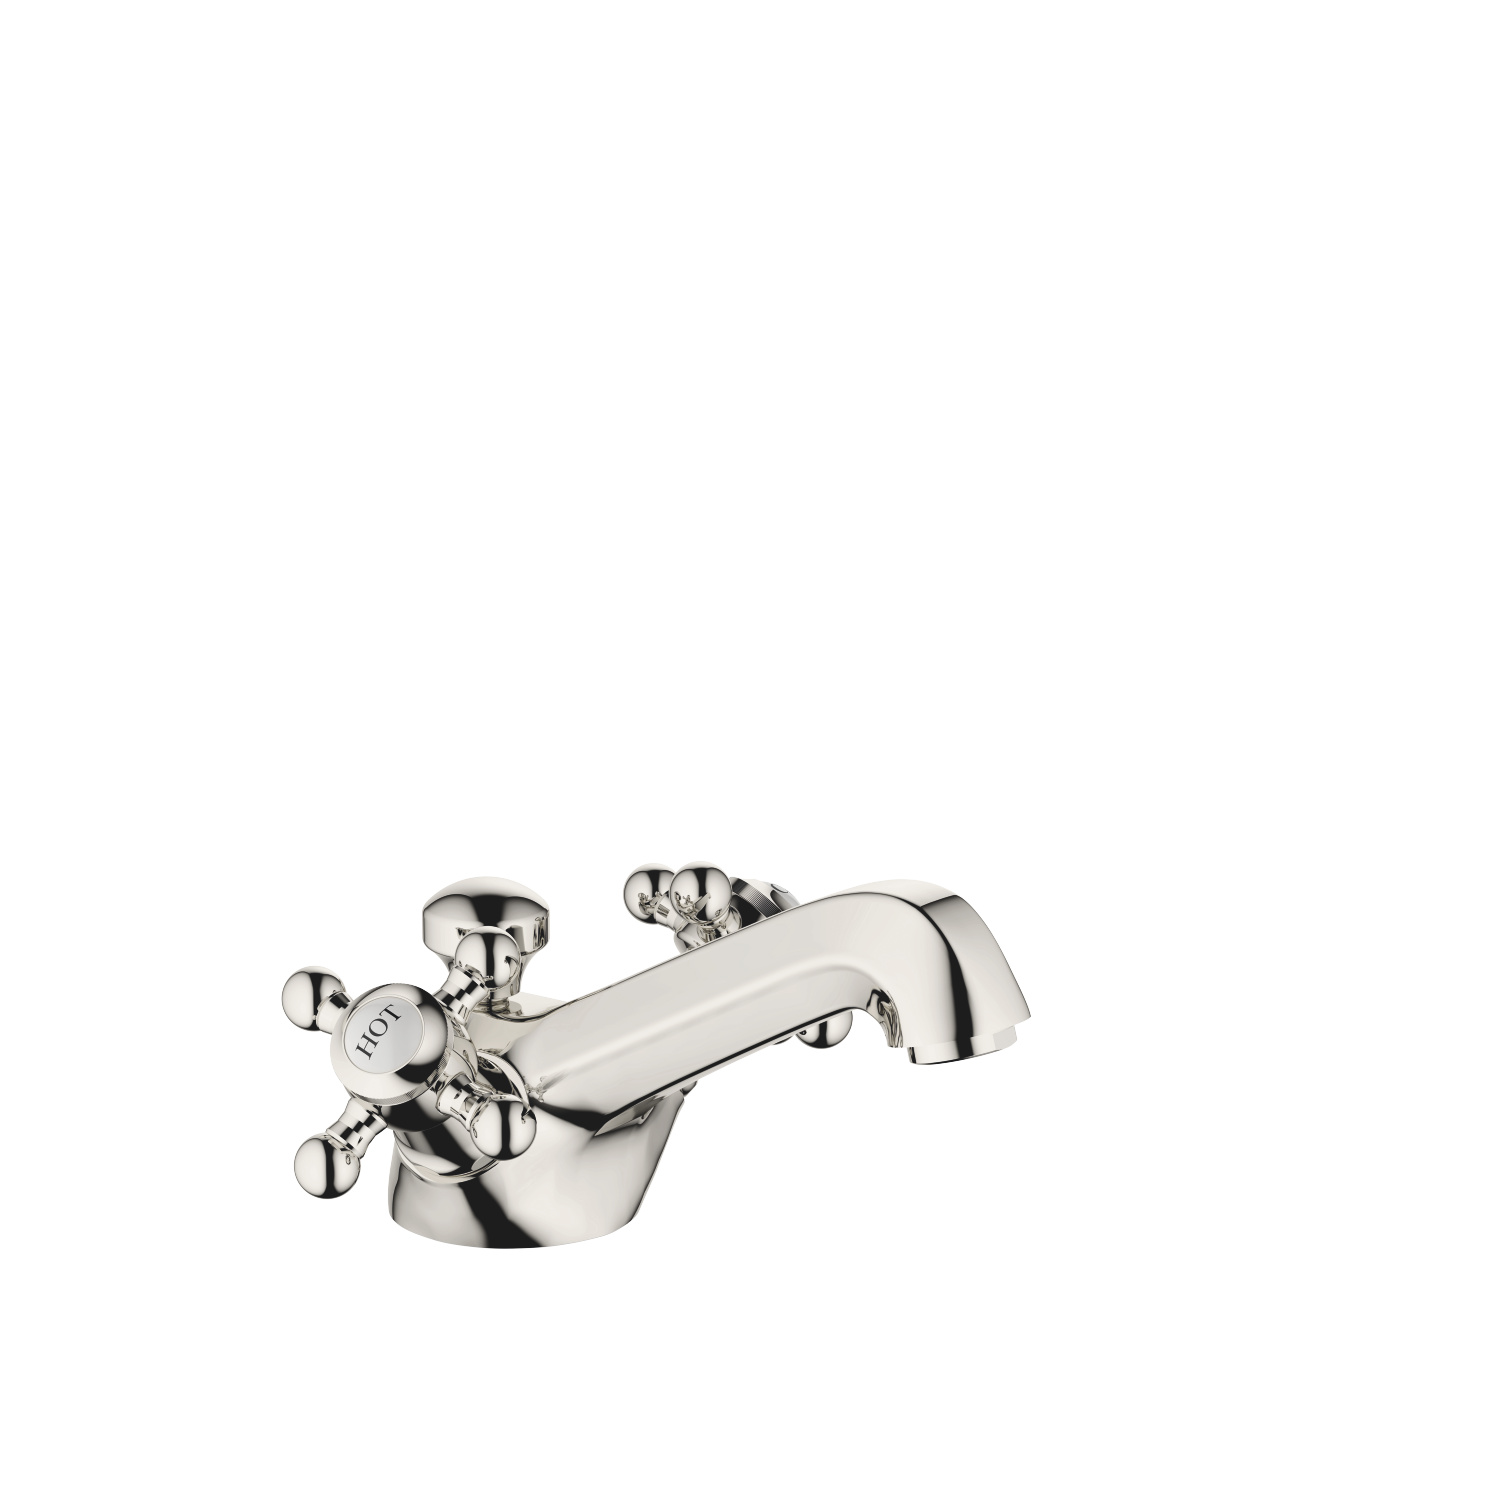 Single-hole basin mixer with pop-up waste - platinum - 22 500 360-08